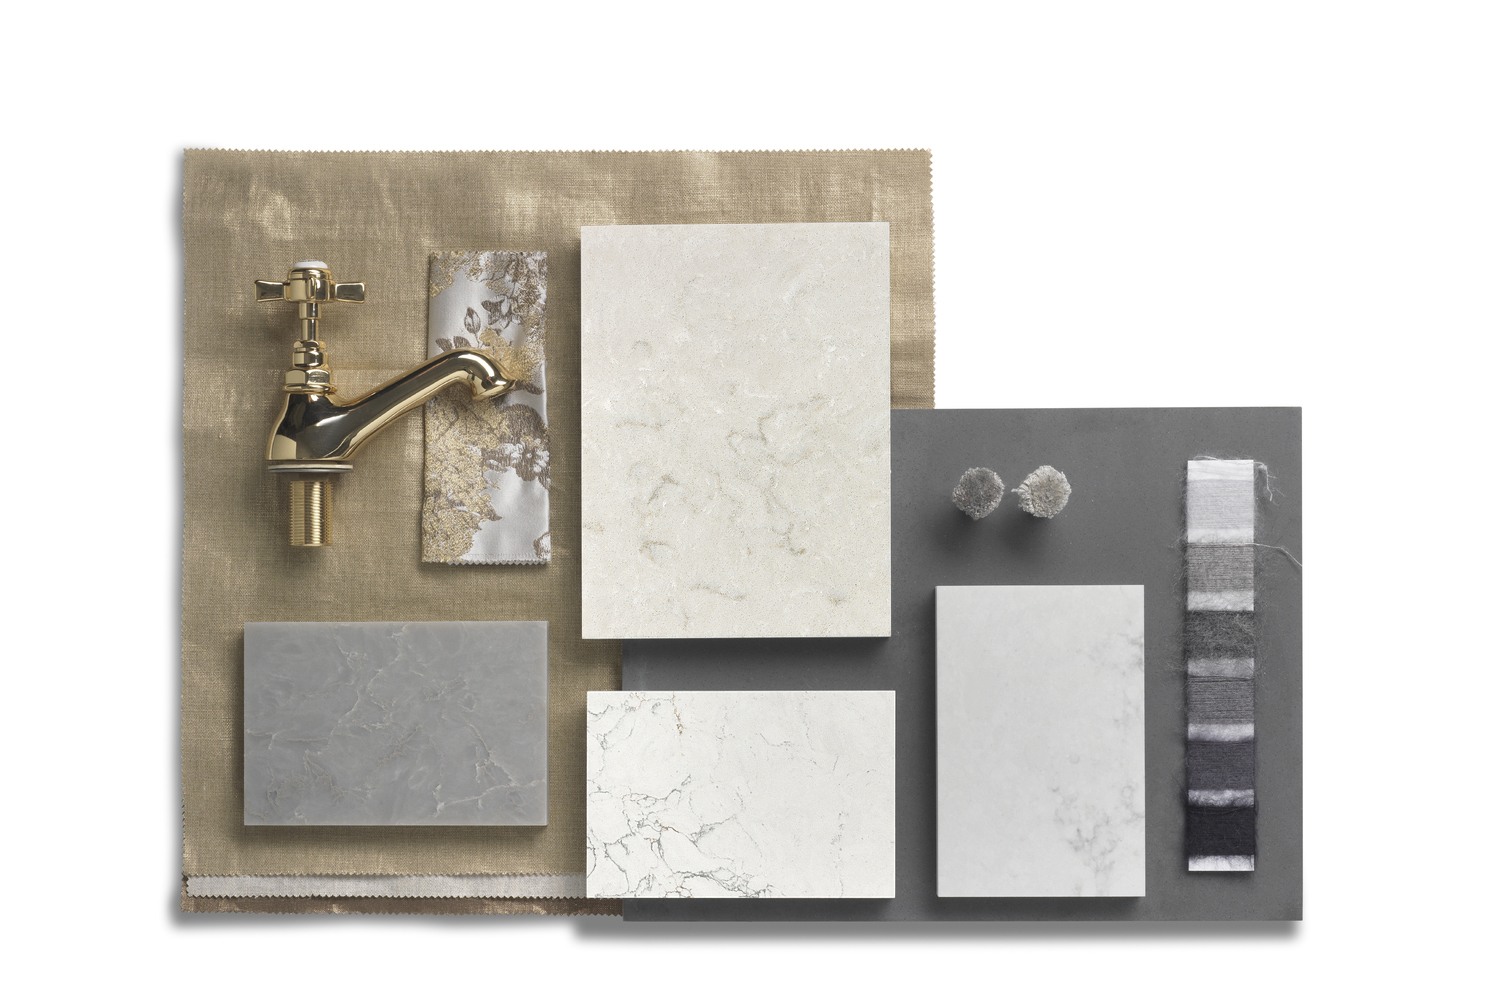 Corian solid surface includes five collections: Aggregate, Terrazzo, Linear, Nuwood and Onyx aesthetics.